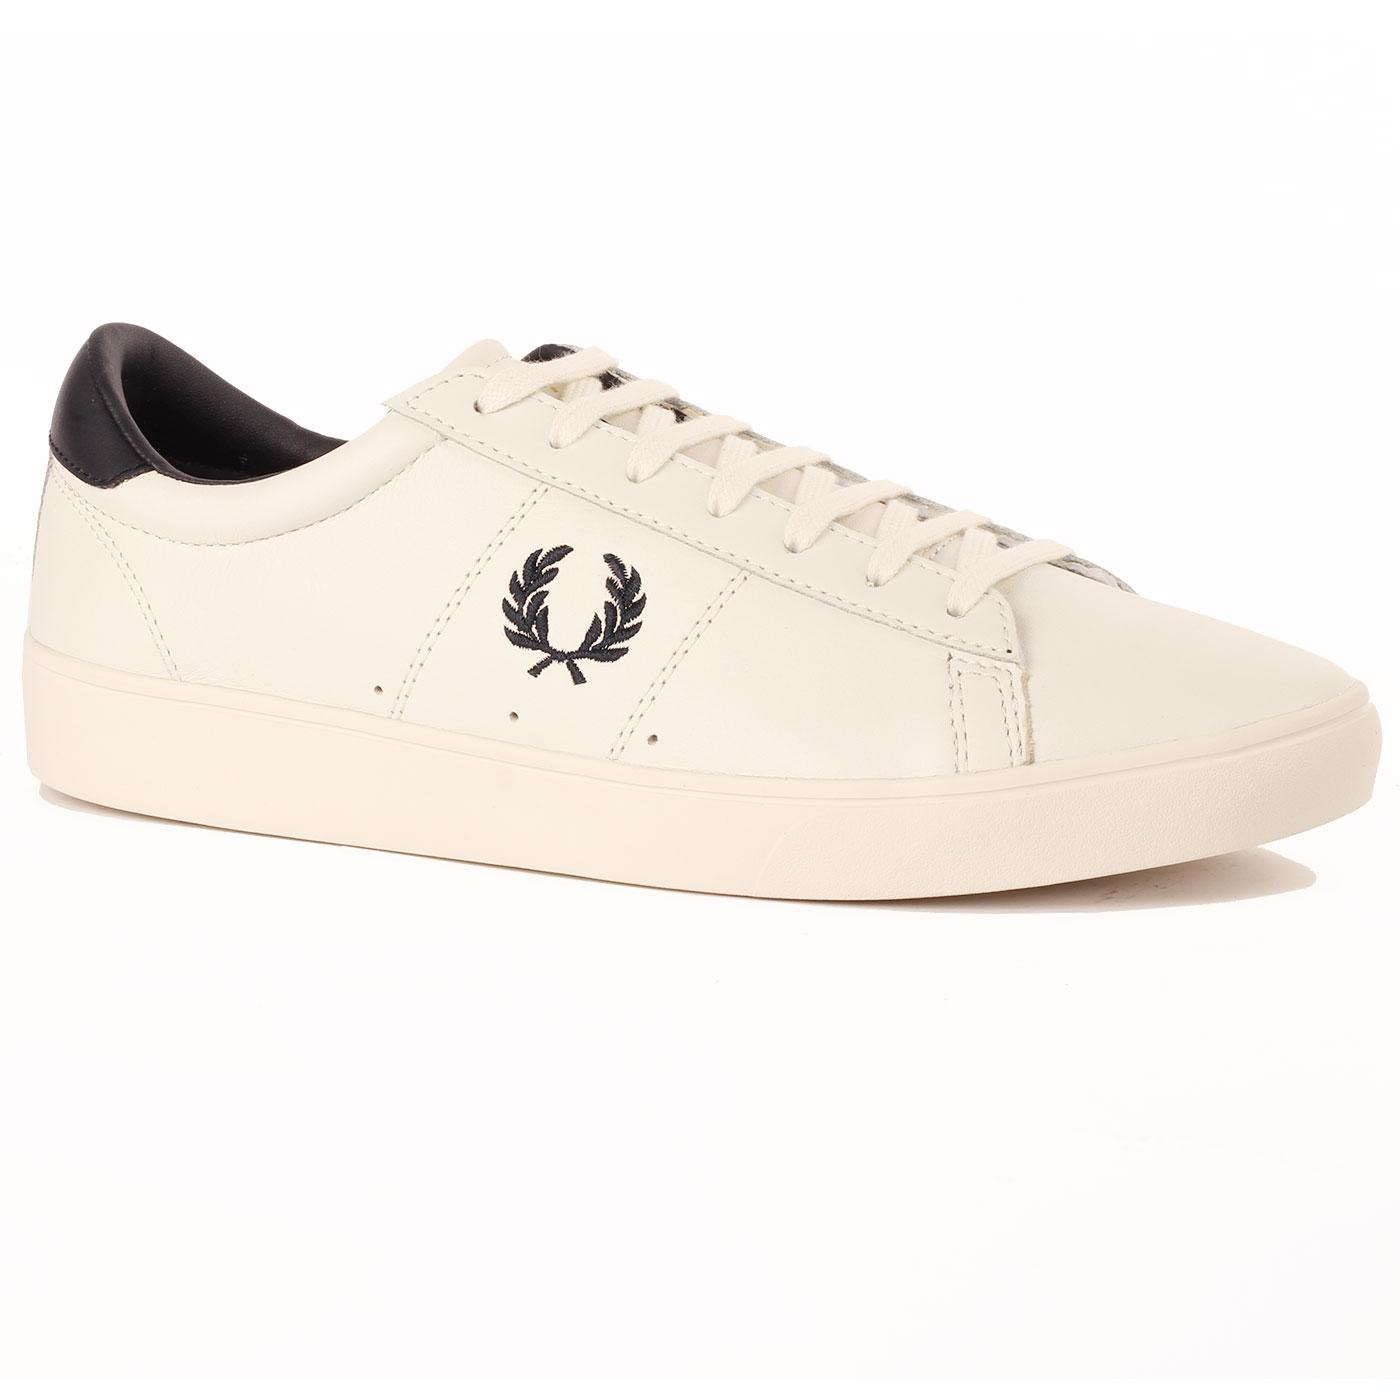 Spencer FRED PERRY Men's Retro Leather Trainers